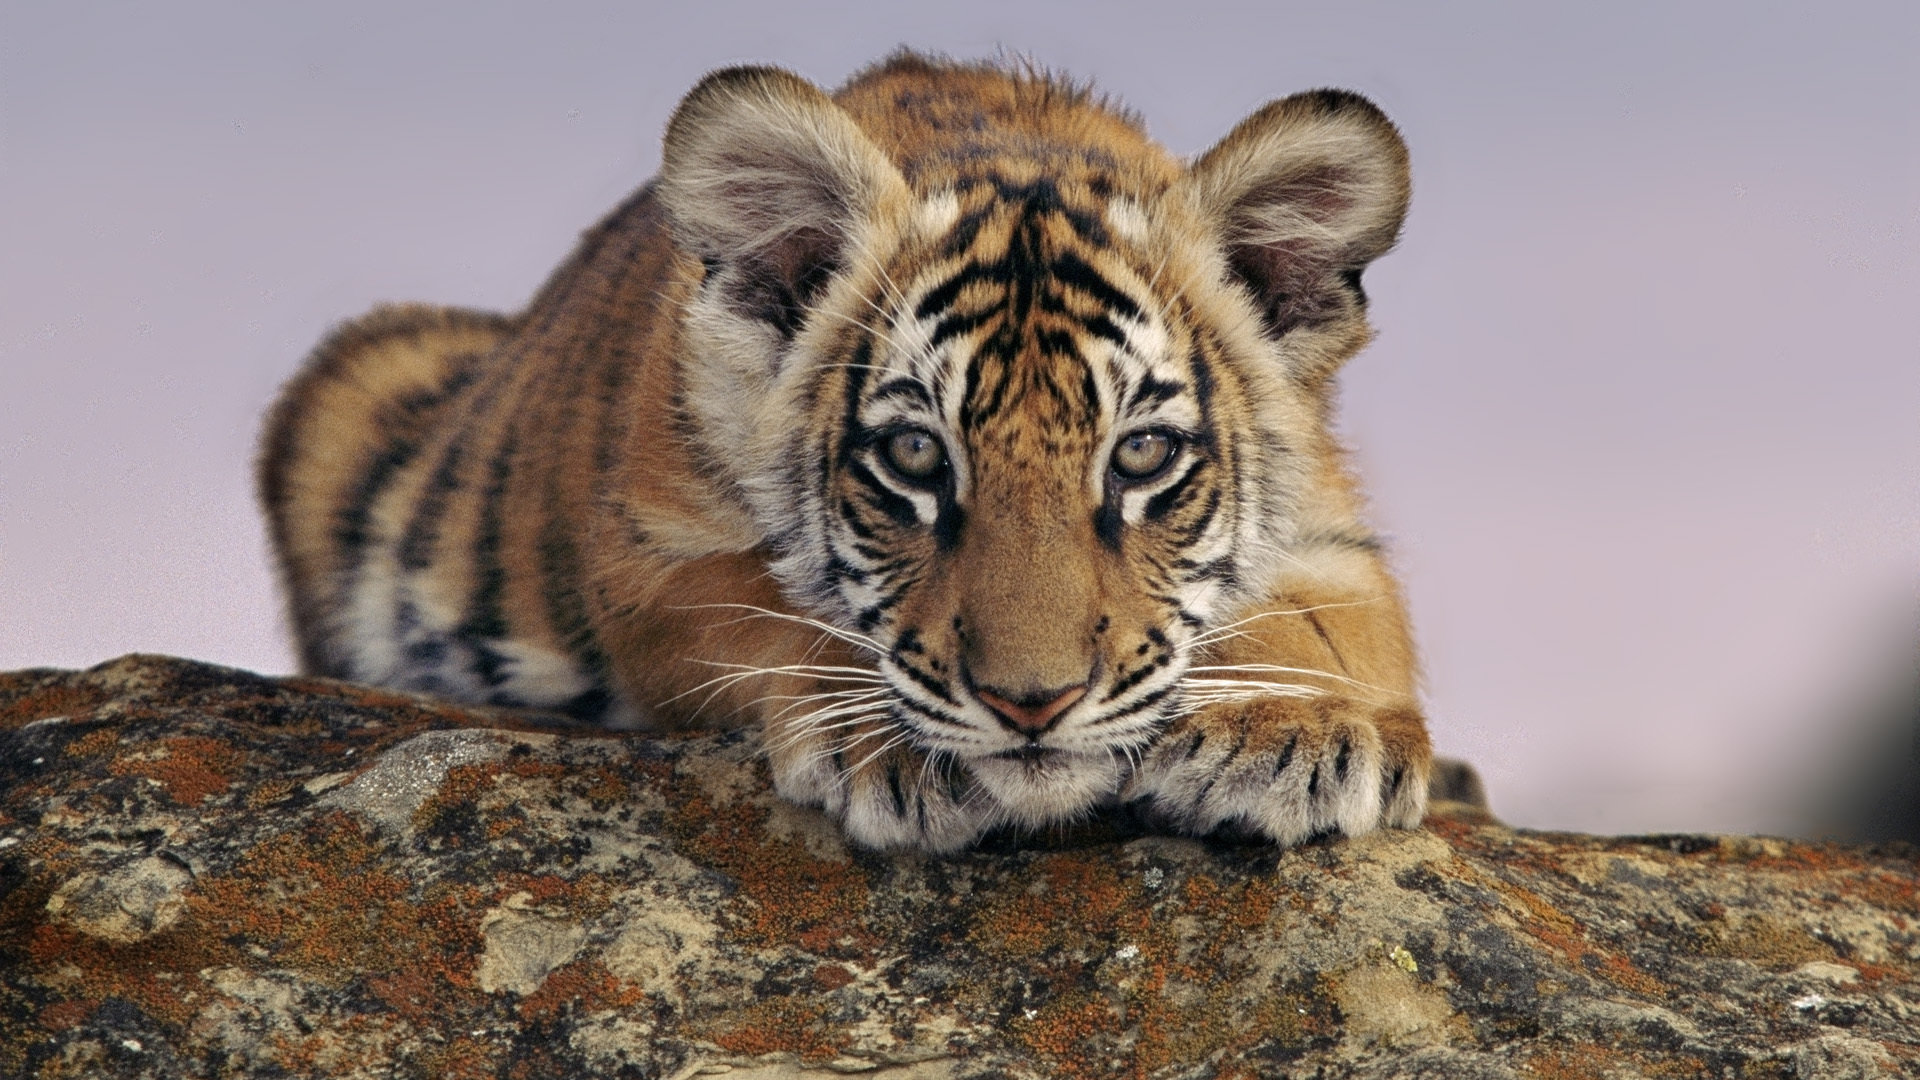 High resolution Tiger full hd 1080p wallpaper ID:116177 for PC